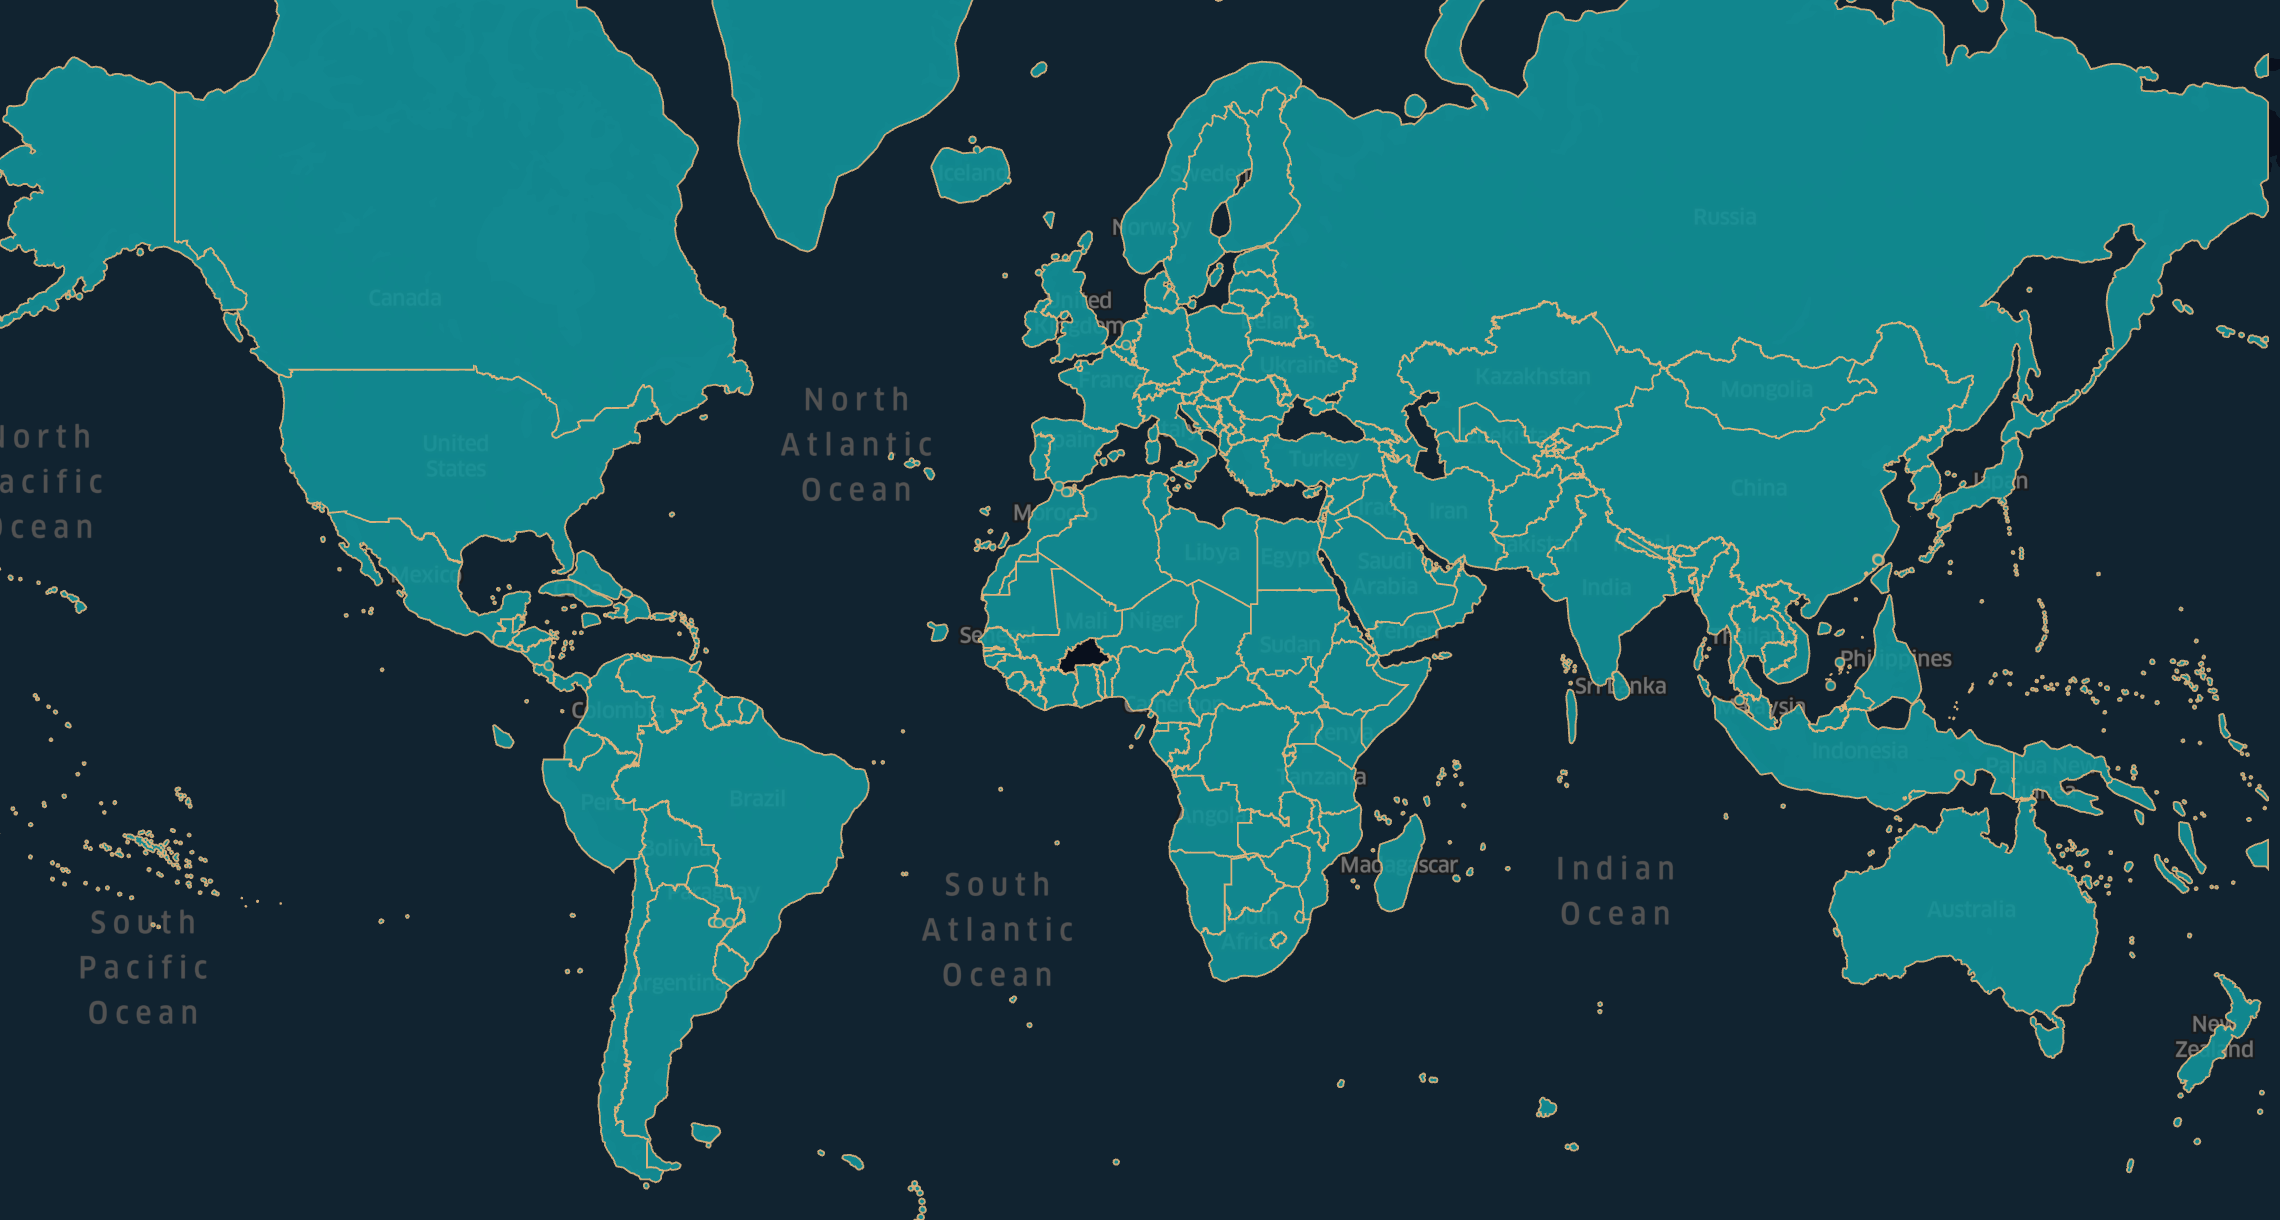 World Countries Borders example from OSM